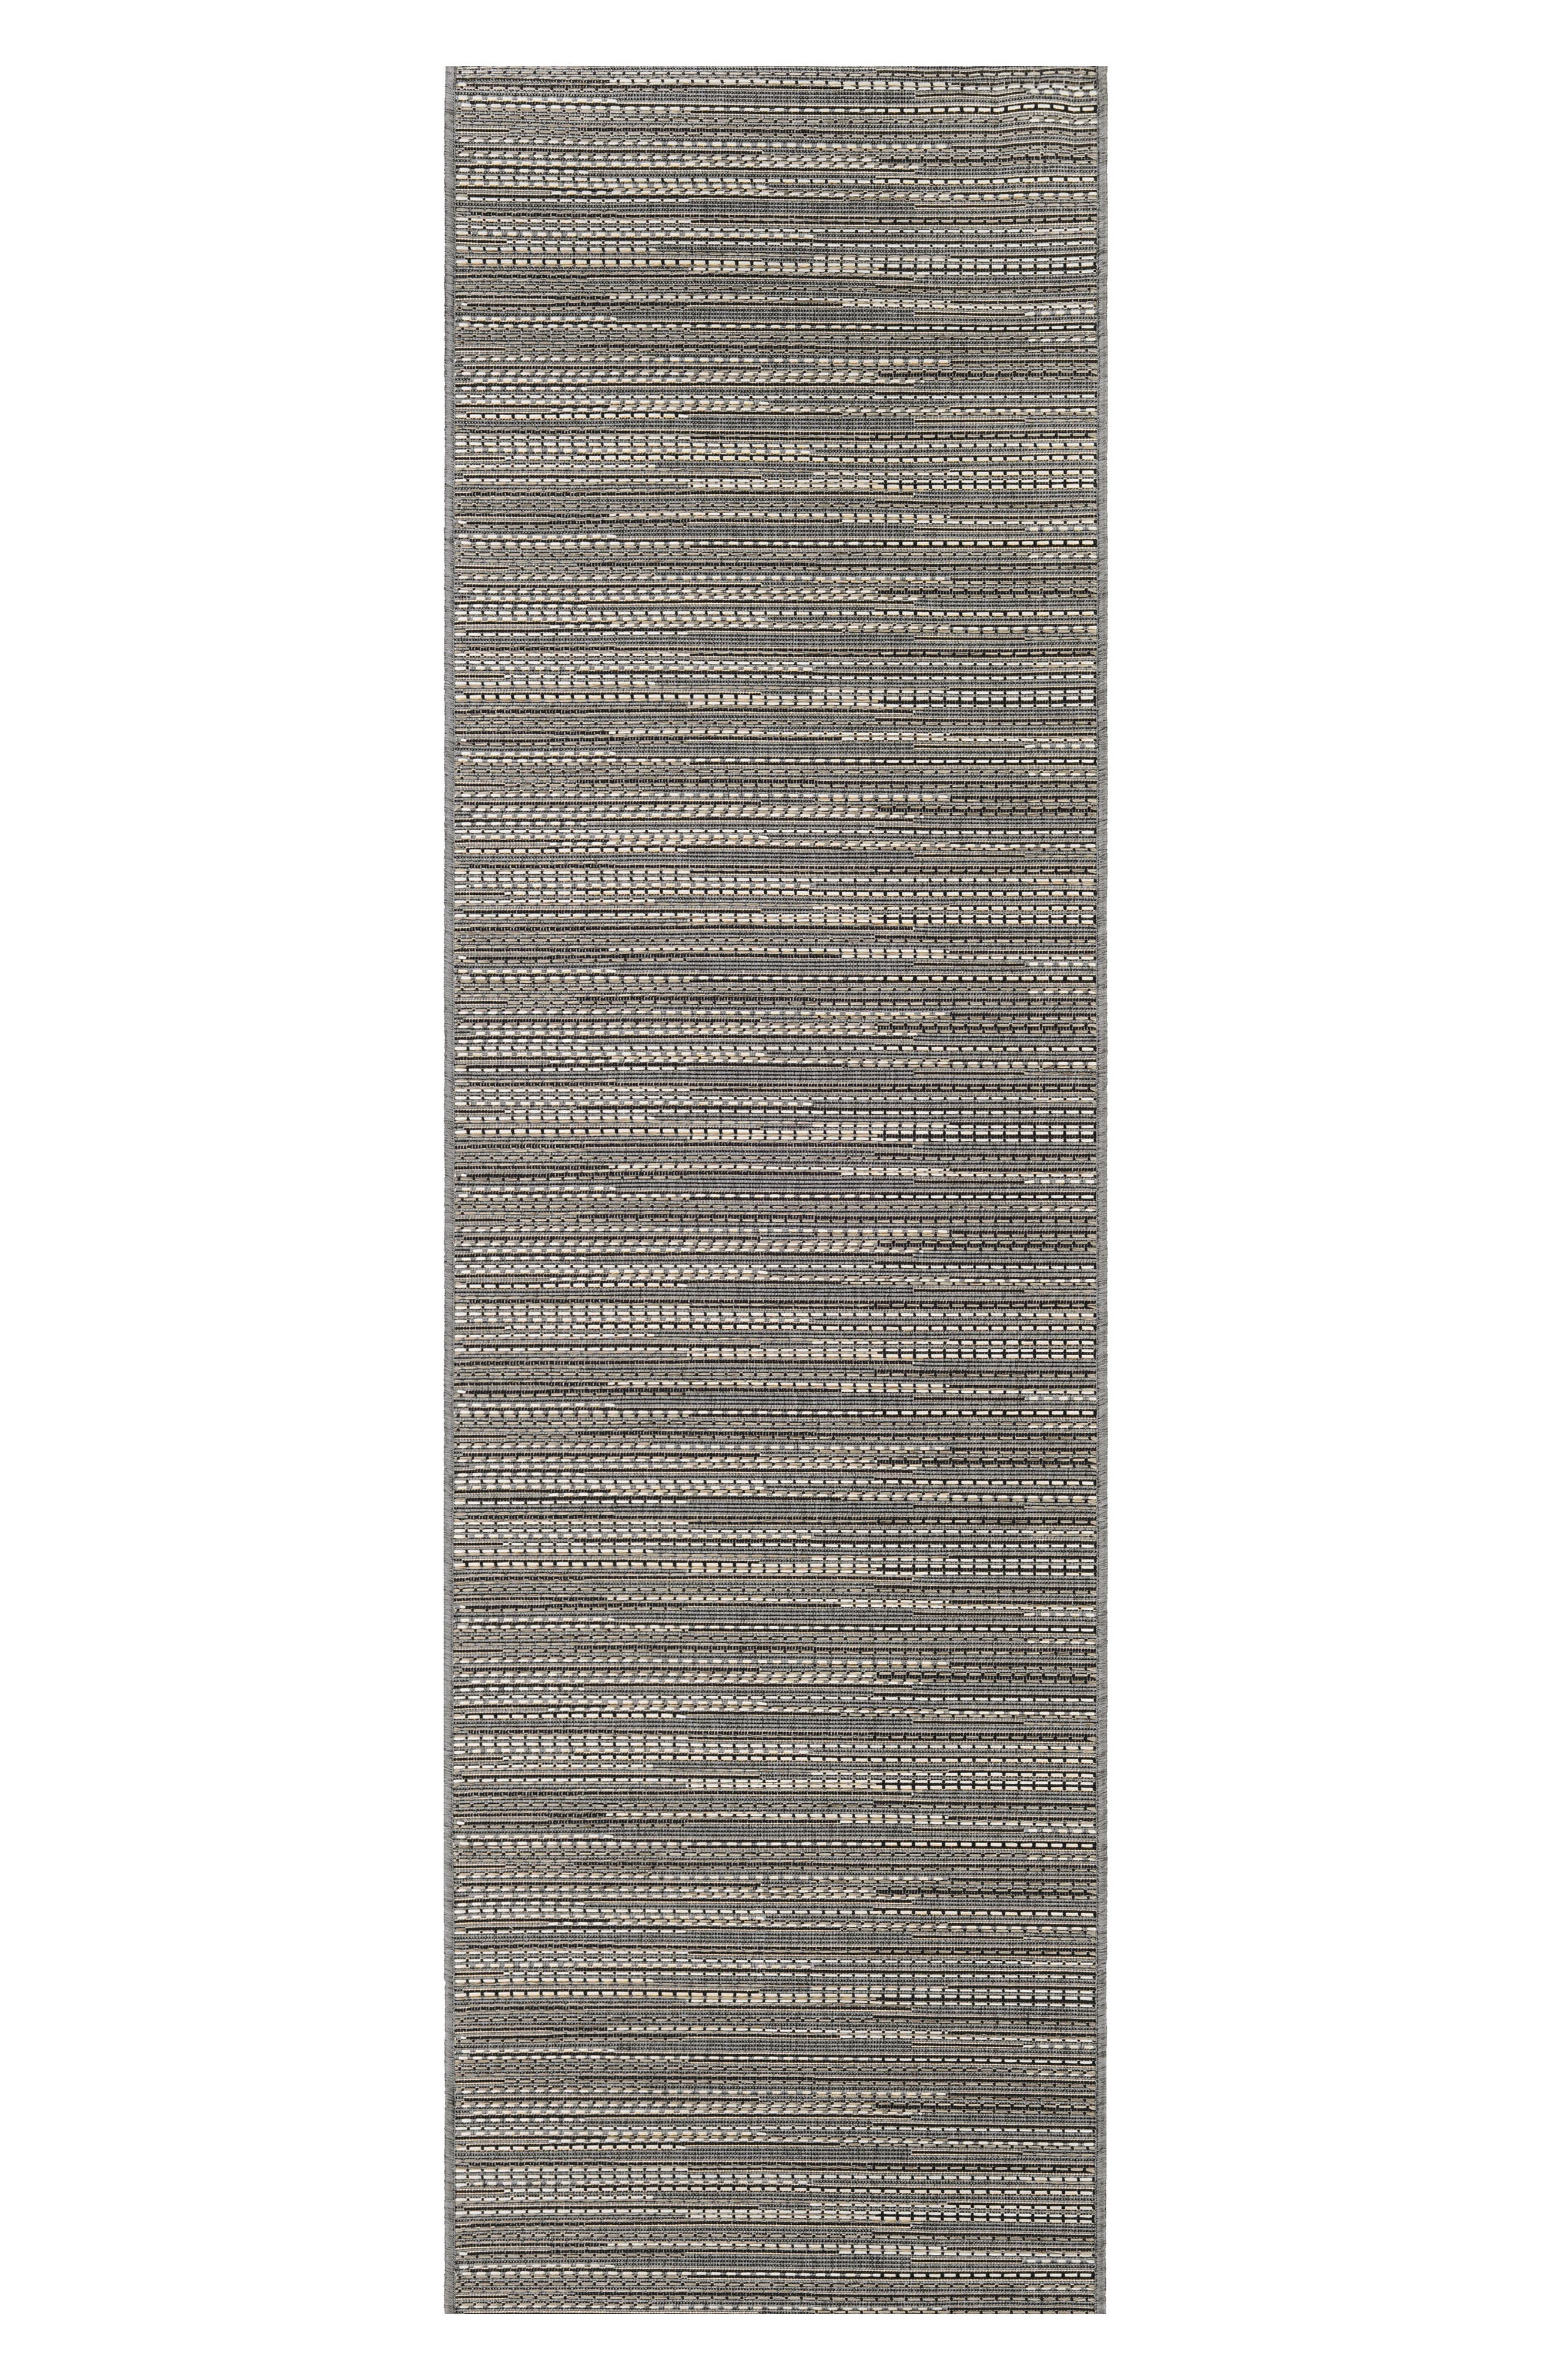 Monaco Larvotto Indoor/Outdoor Rug,                             Alternate thumbnail 2, color,                             020